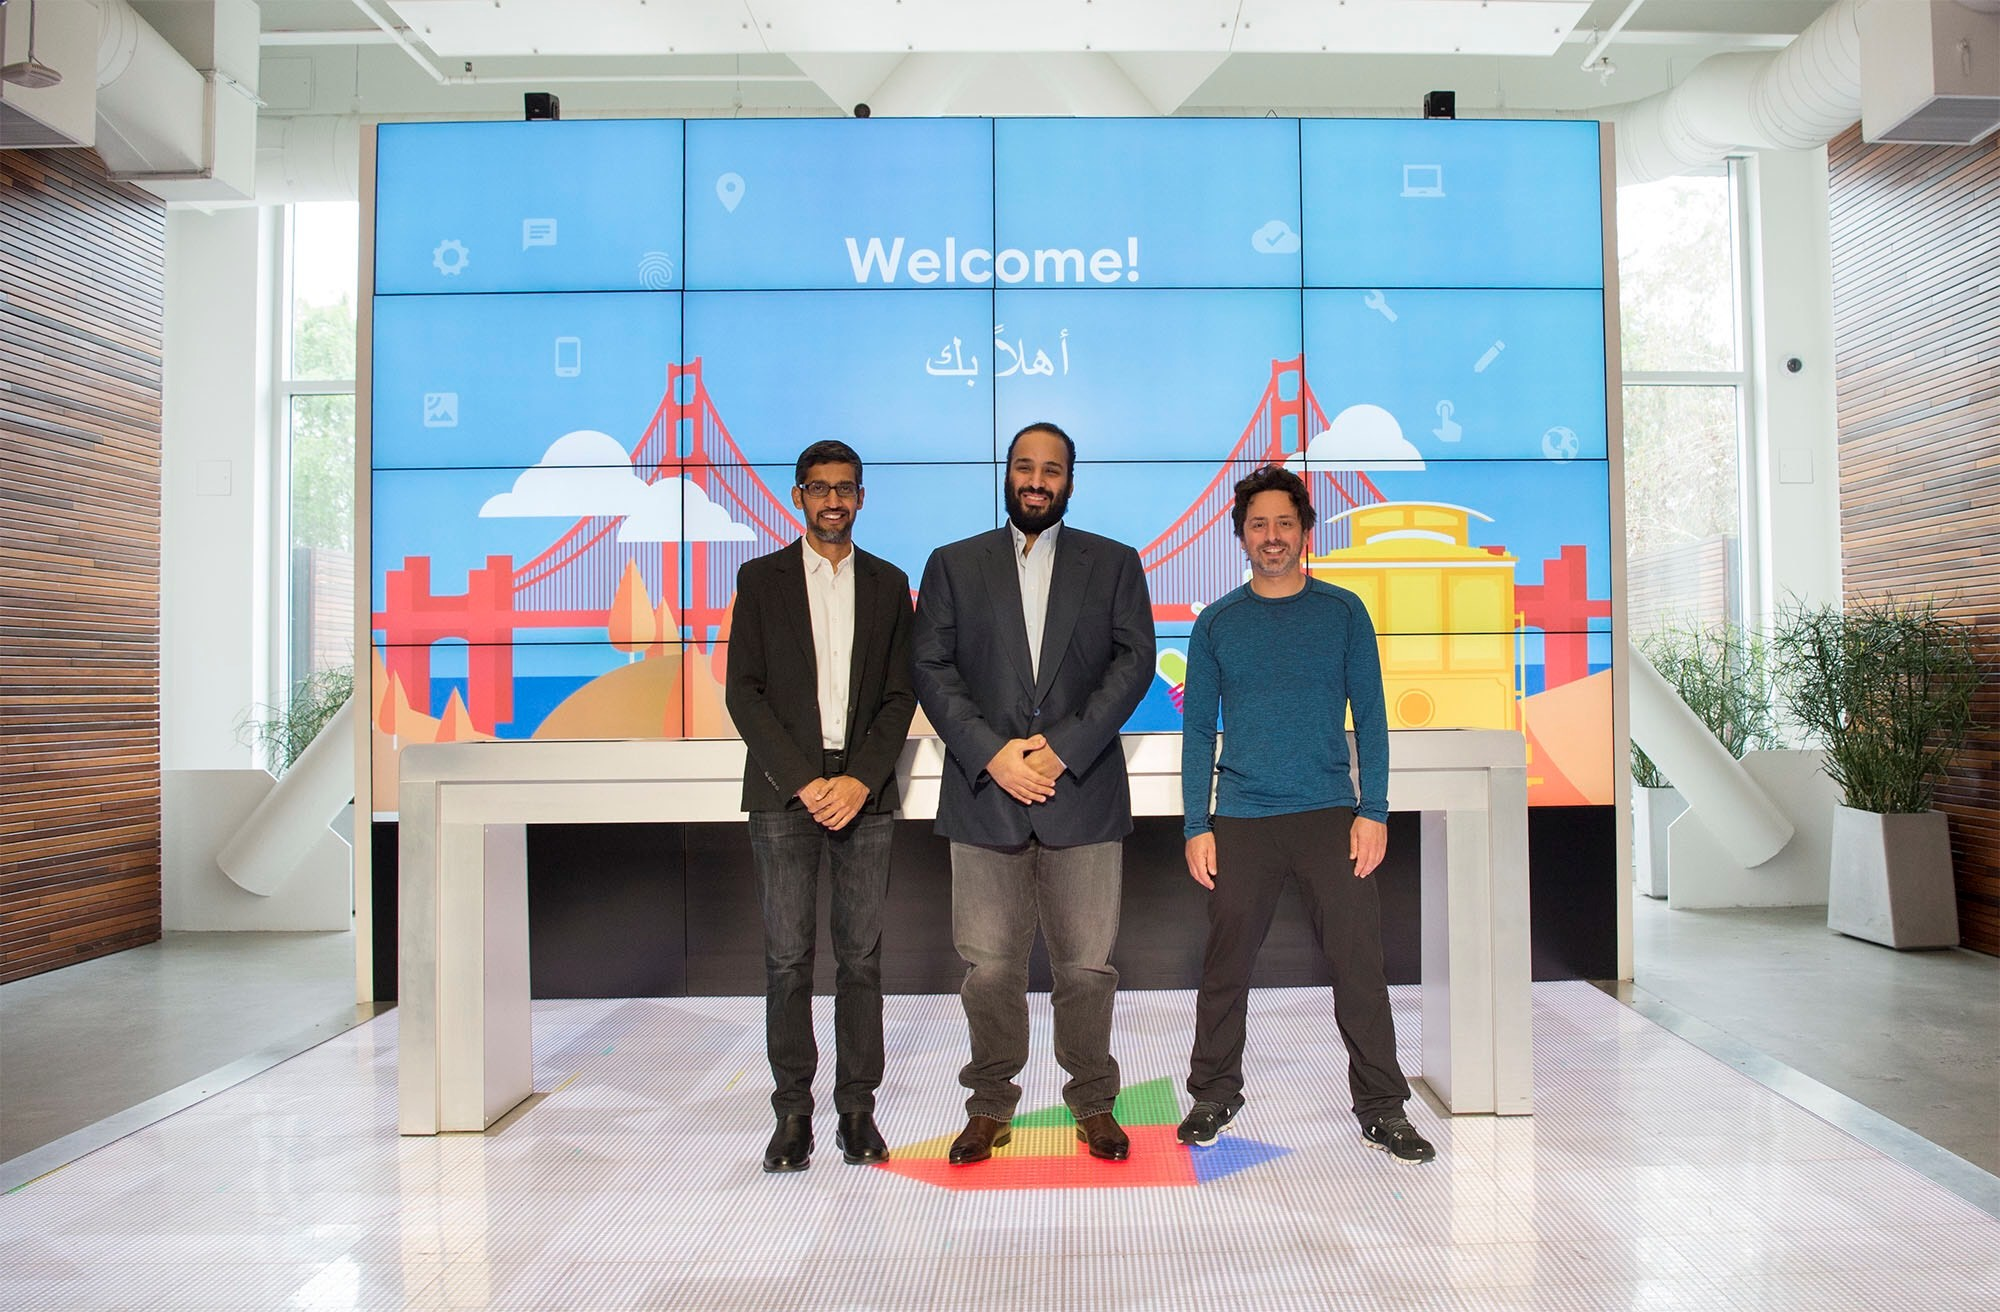 """left to right: Google CEO Sundar Pichai, Saudi Crown Prince Mohammed bin Salman and Google co-founder Sergey Brin pose in front of a """"Welcome"""" sign decorated with a drawing of the Golden Gate Bridge and a cable car."""